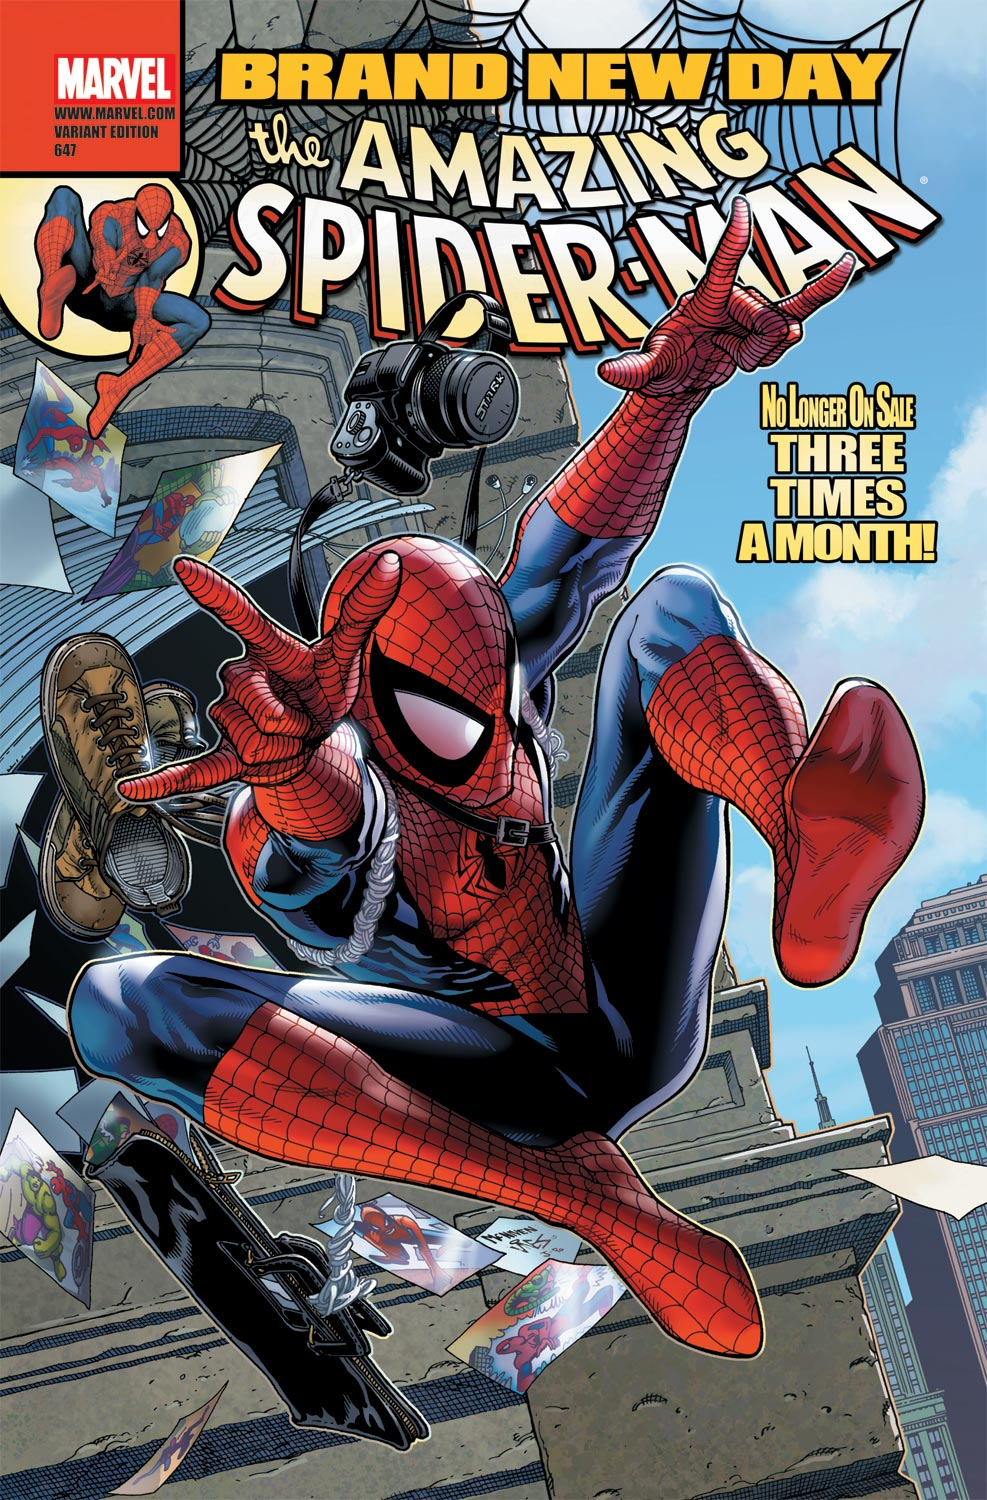 Amazing Spider-Man (1999) #647 (MCNIVEN VARIANT)